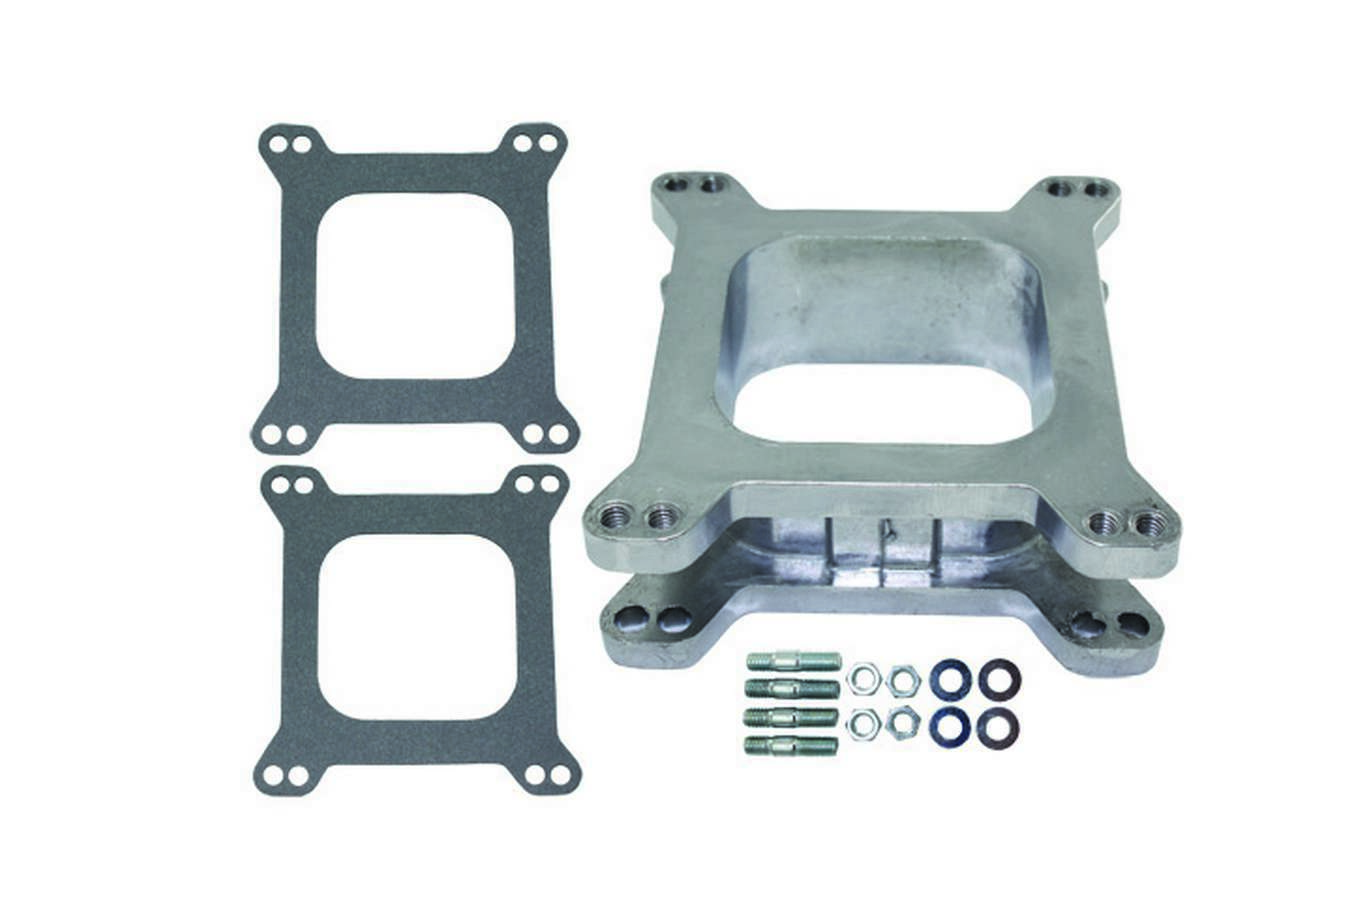 Specialty Chrome 9132 Carburetor Adapter, 2 in Thick, Open, Carter AFB to Square Bore, Gaskets/Hardware Included, Aluminum, Natural, Each